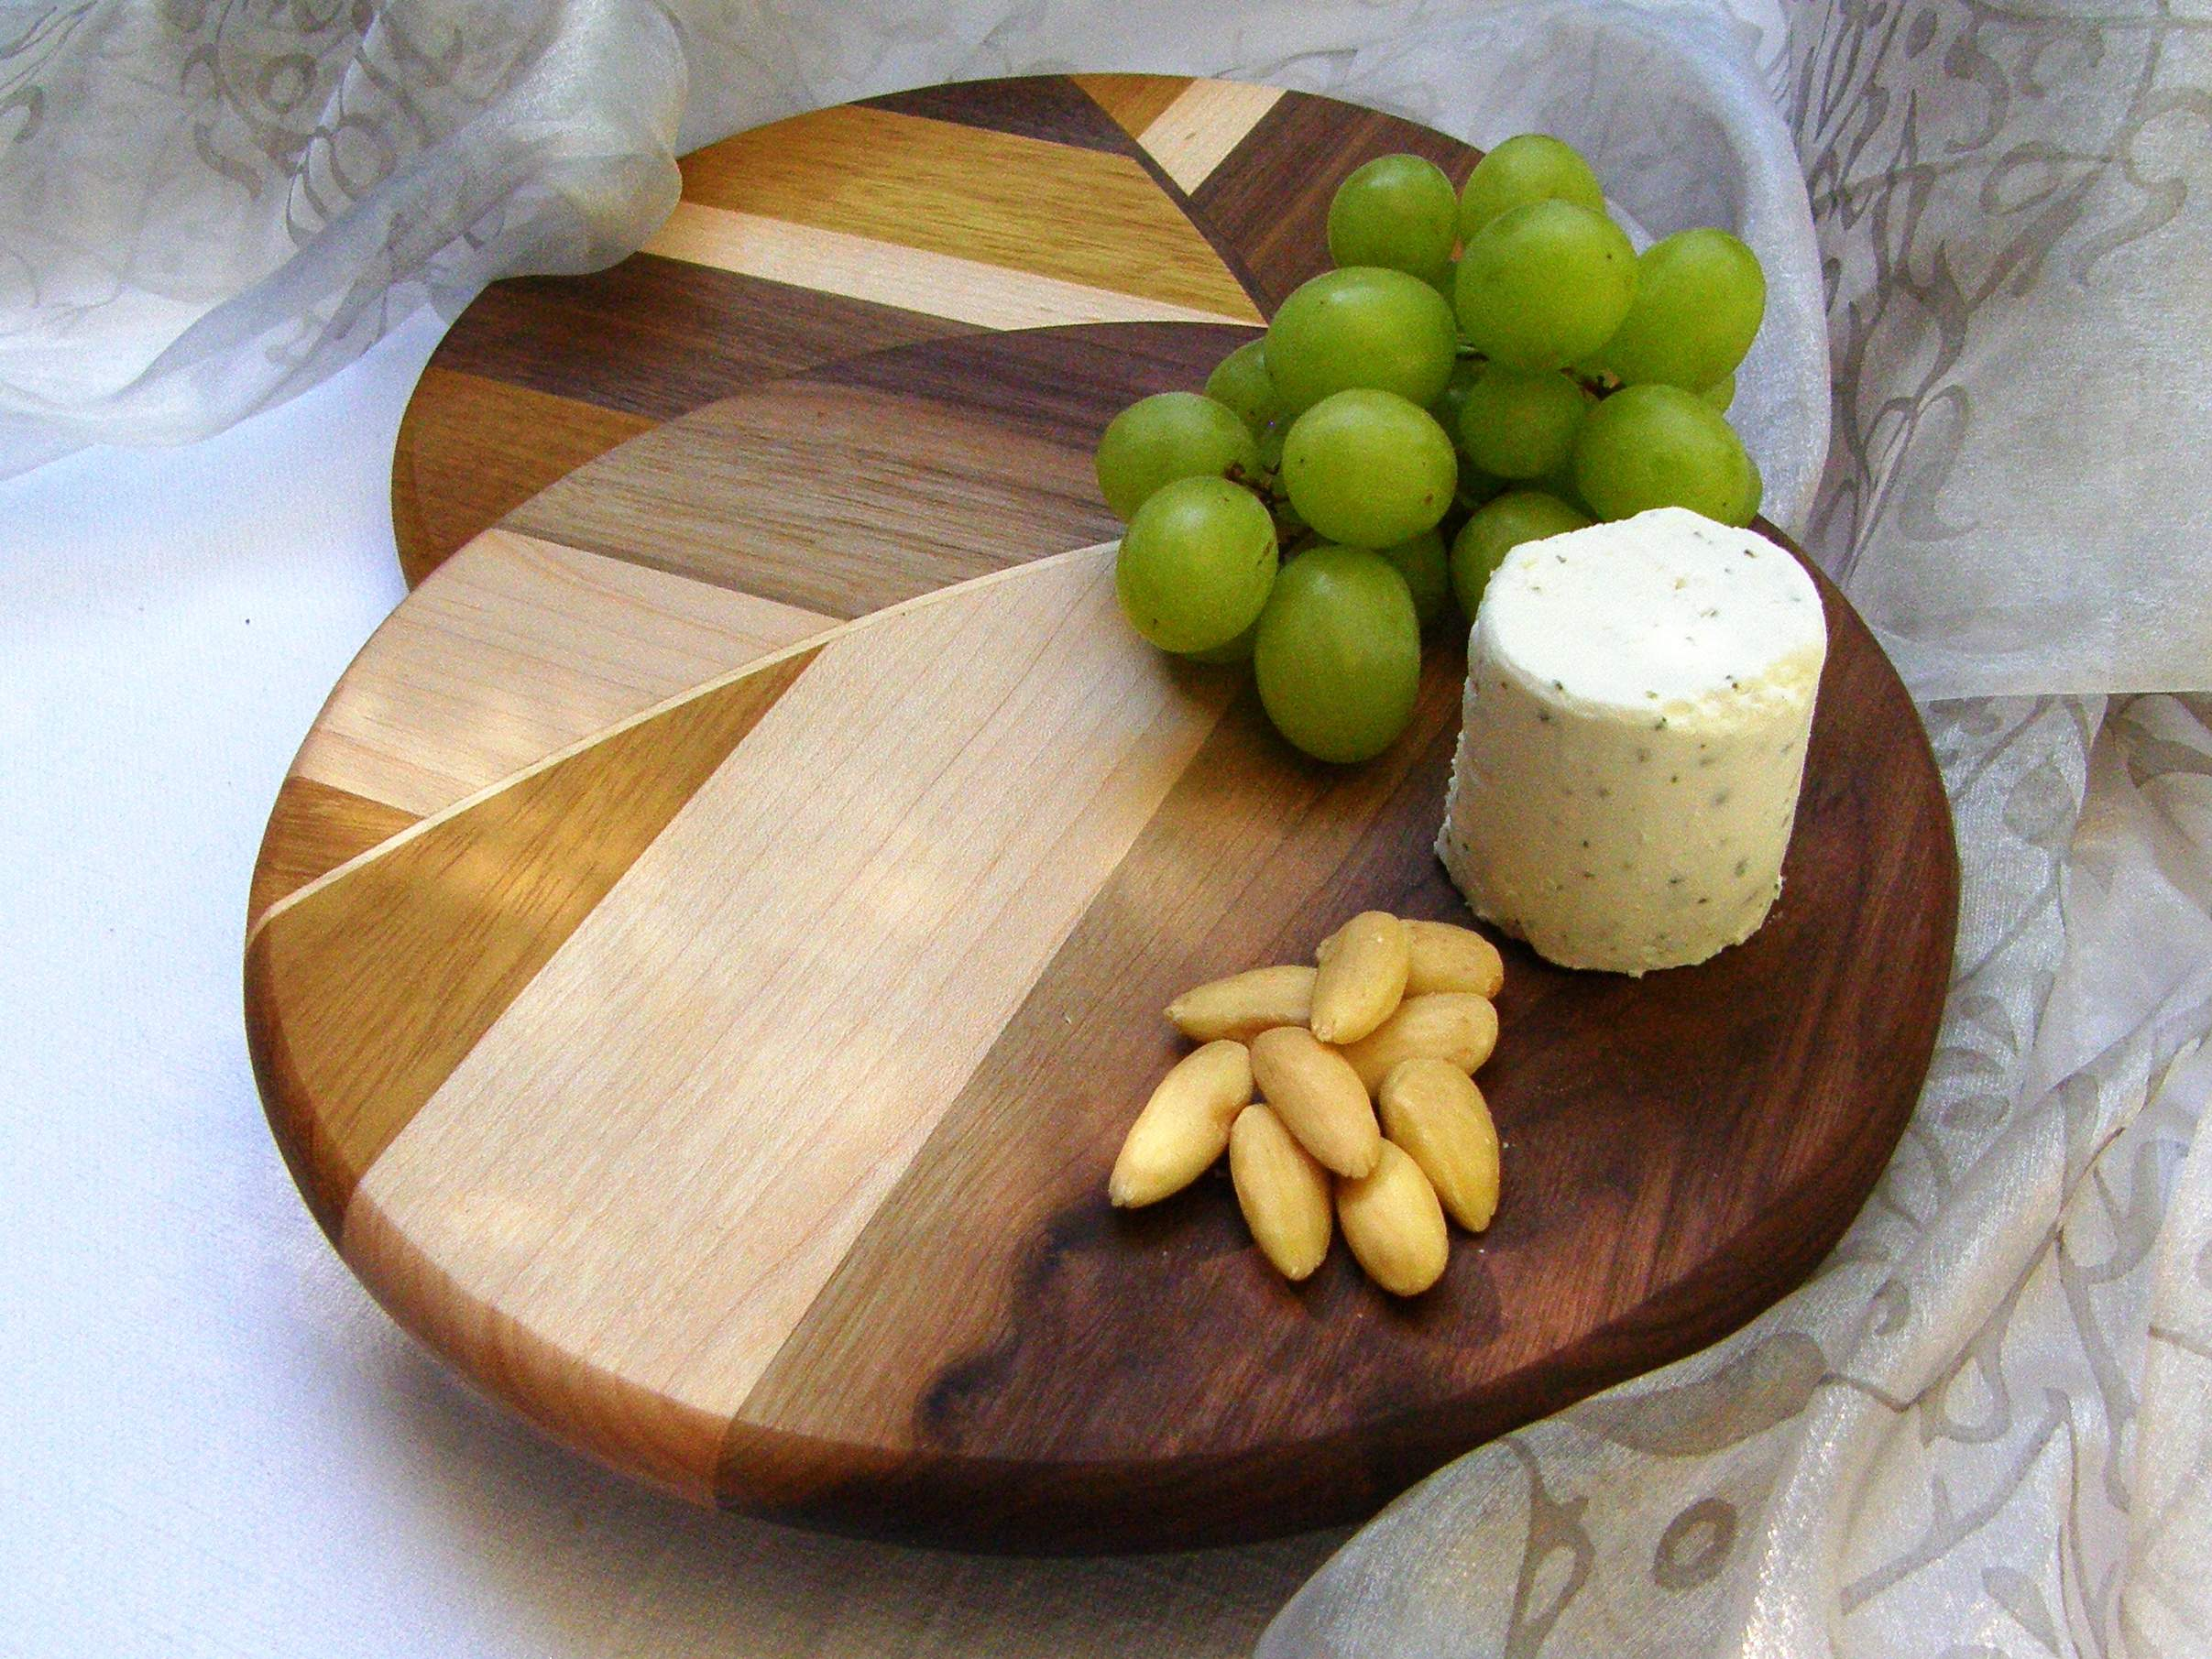 CARAMEL CHEESE BOARD